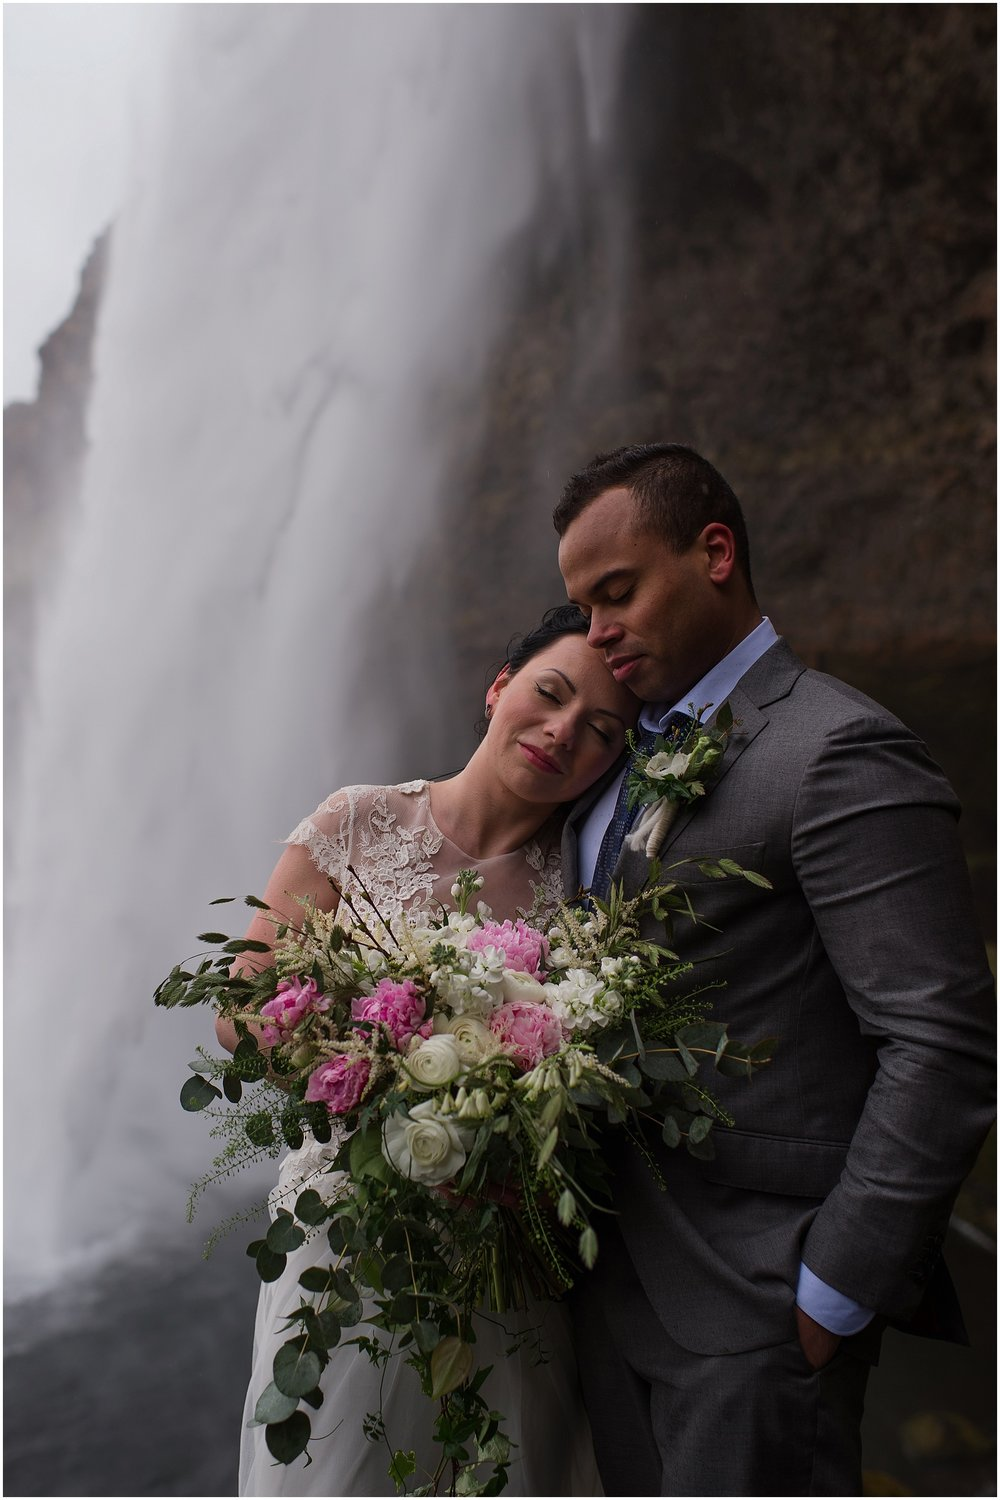 Hannah Leigh Photography Seljalandsfoss Iceland Elopement_2591.jpg